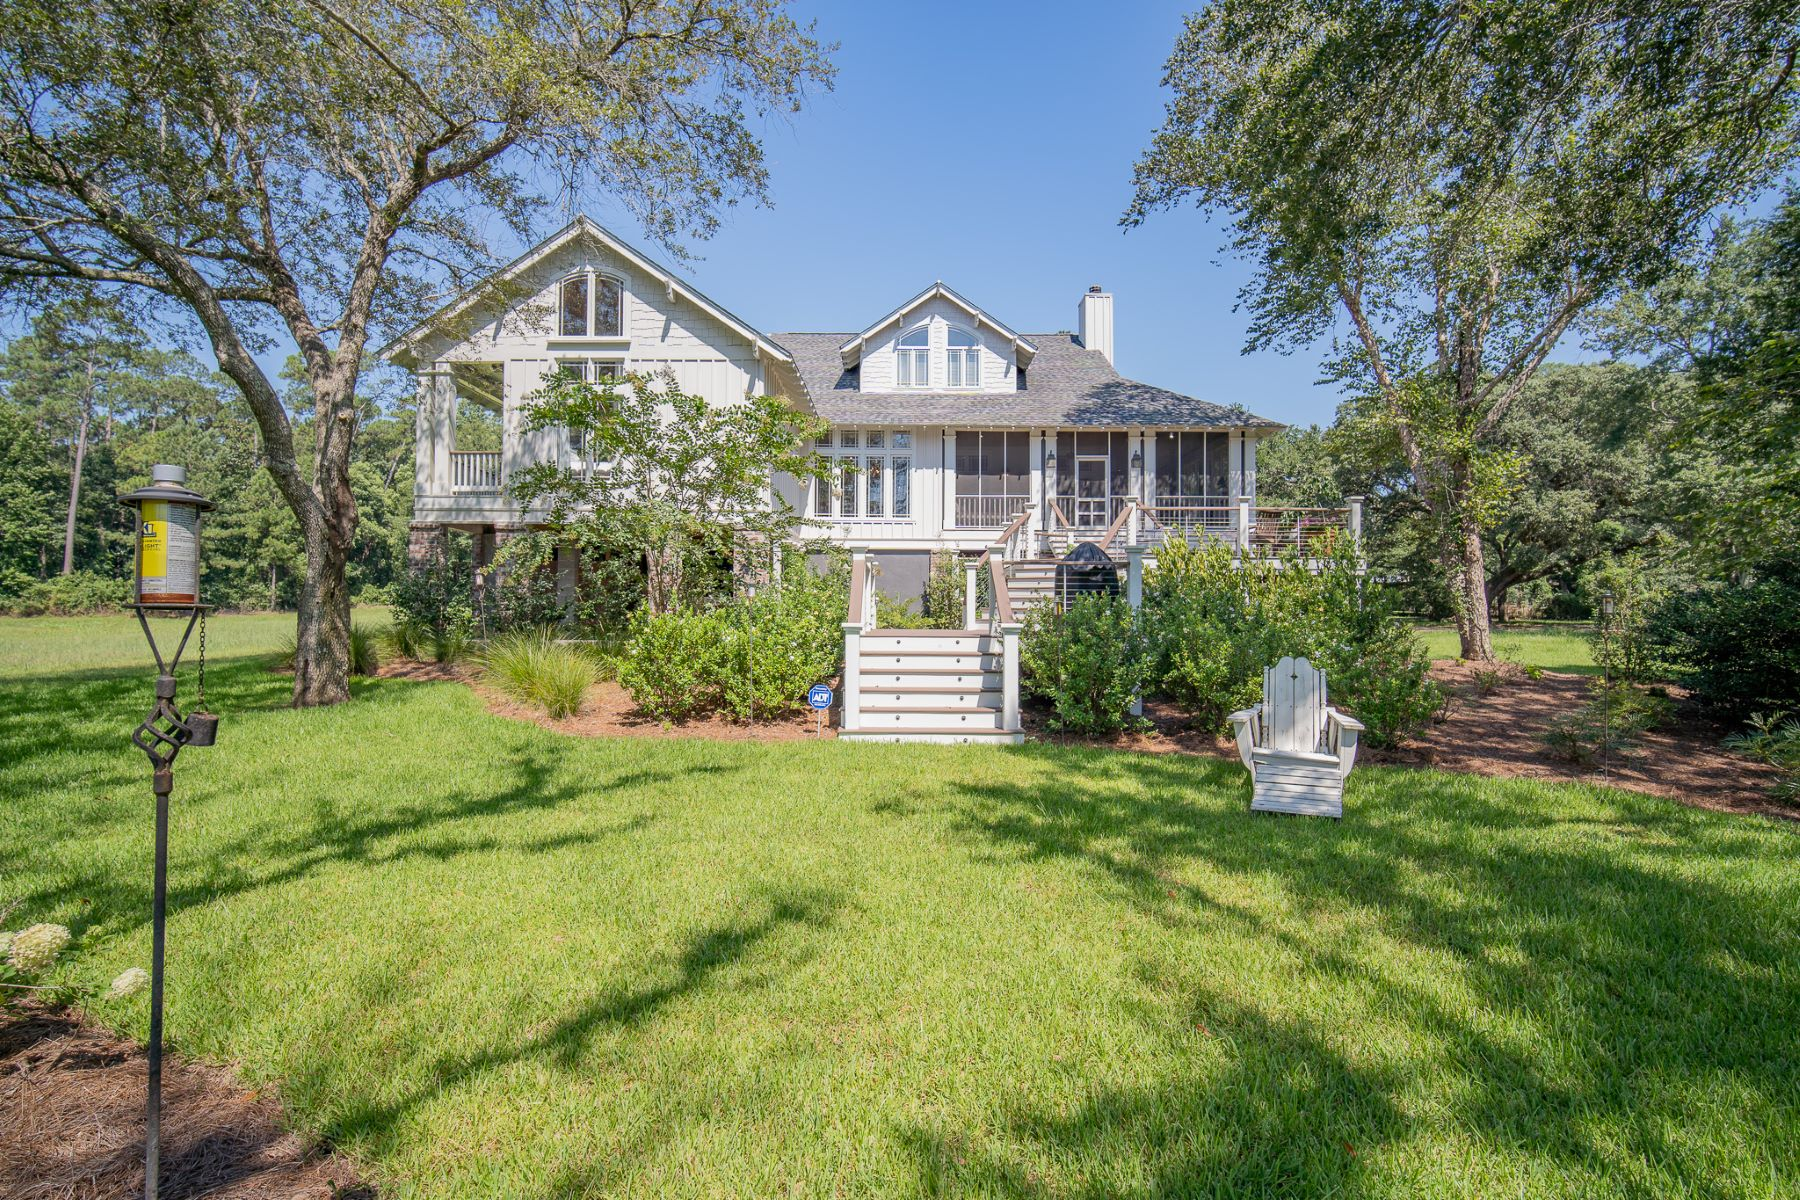 Single Family Homes for Active at 16950 River Drive (Fish River) 16950 River Drive Fairhope, Alabama 36532 United States